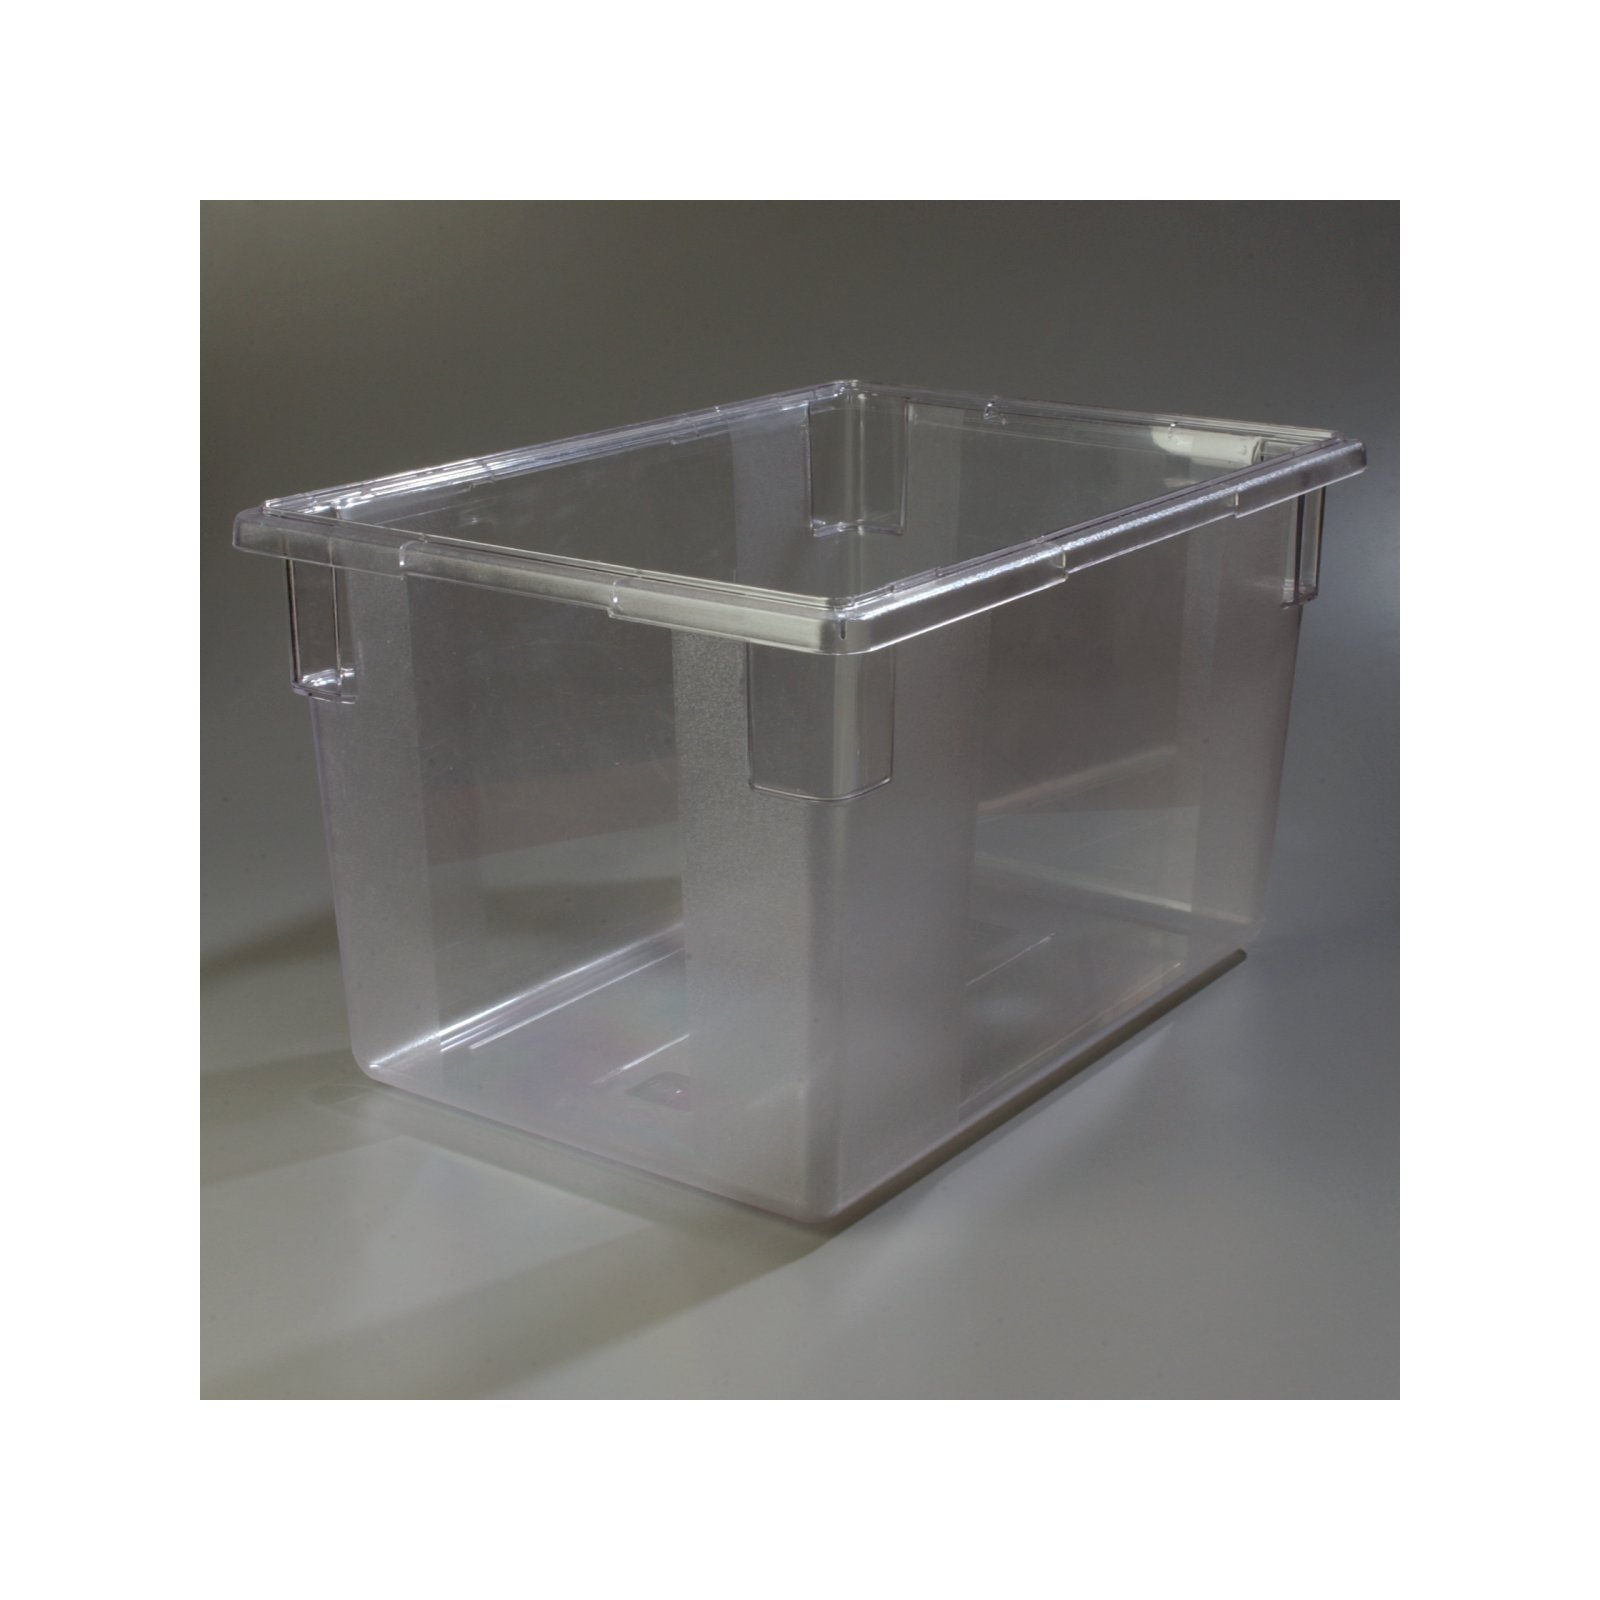 StorPlus™ Polycarbonate Food Box Storage Container 21 5